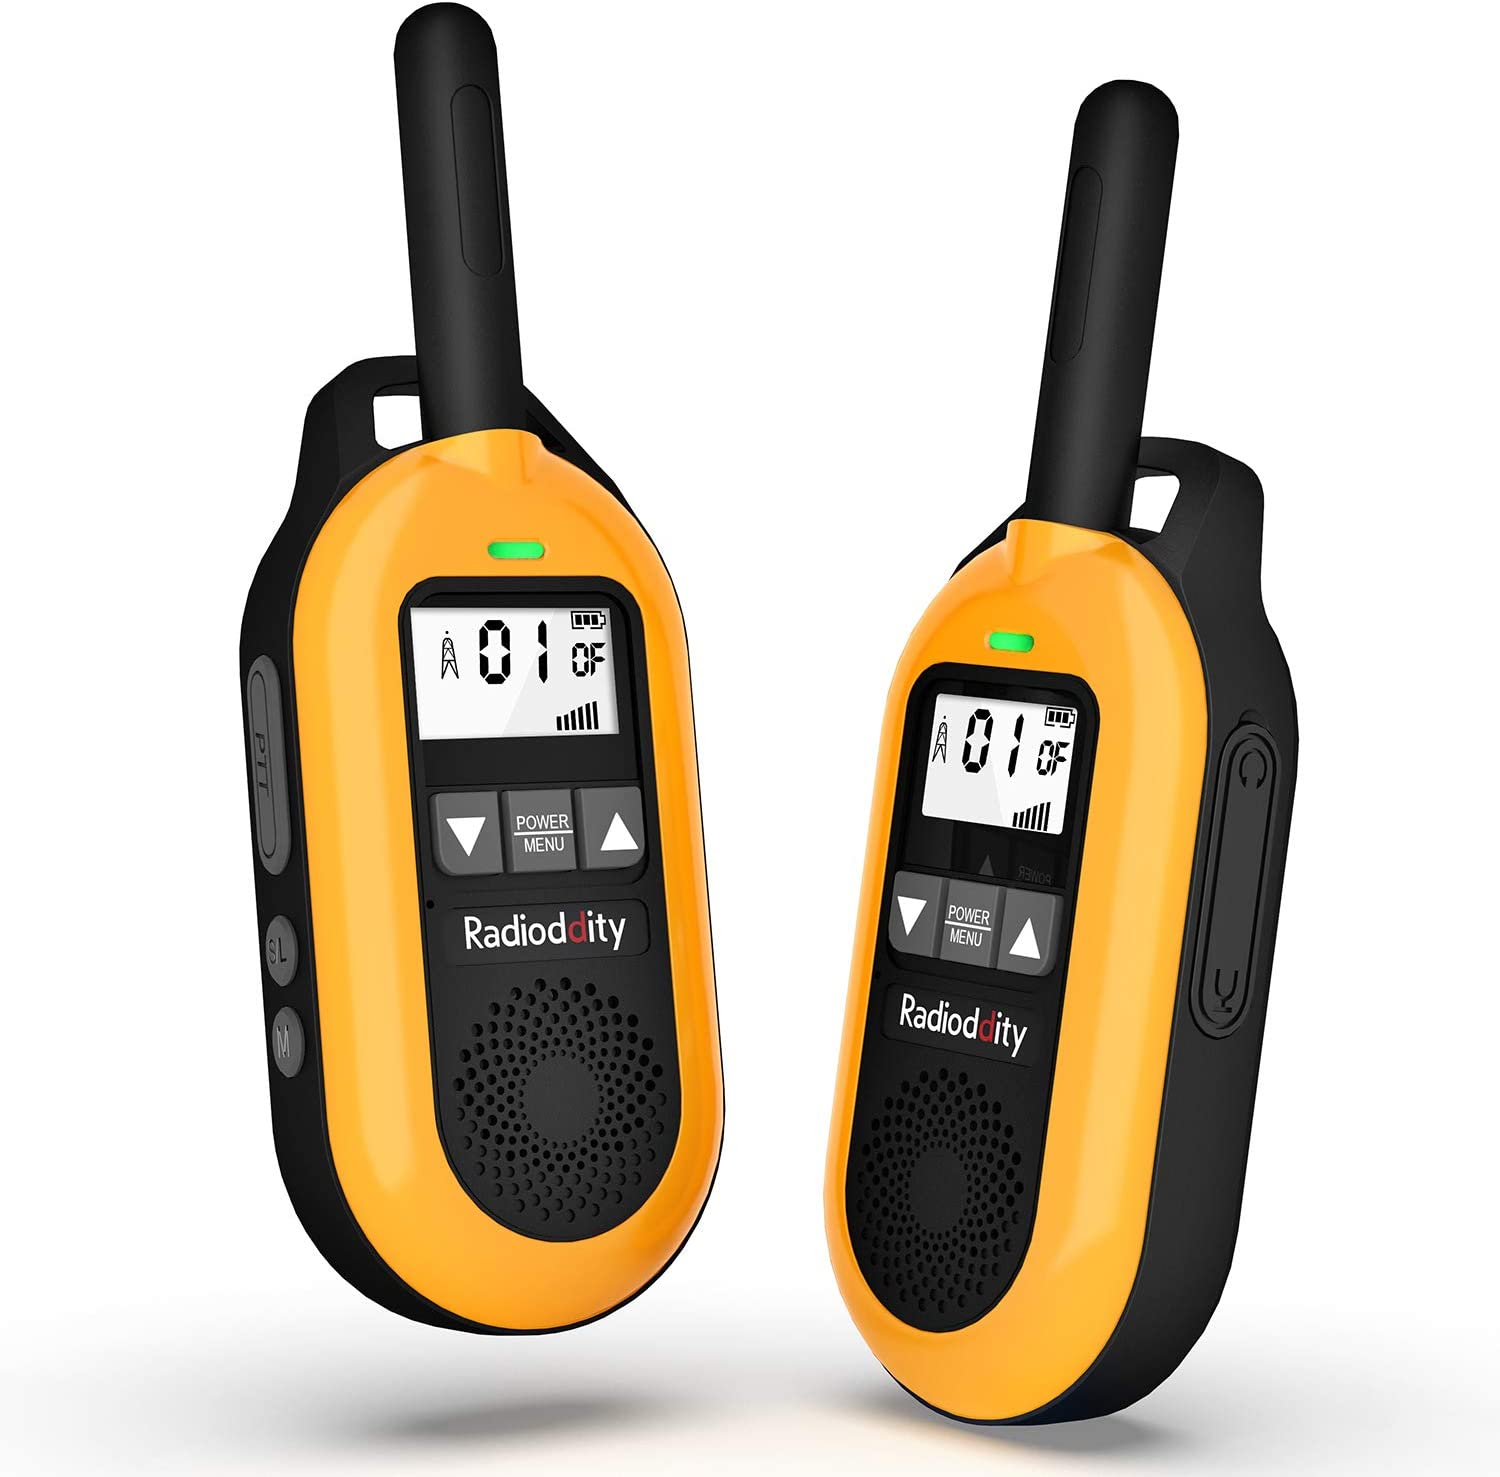 4 years warranty Radioddity FS-T2 Rechargeable Walkie Talkies K for Adults Family Rapid rise